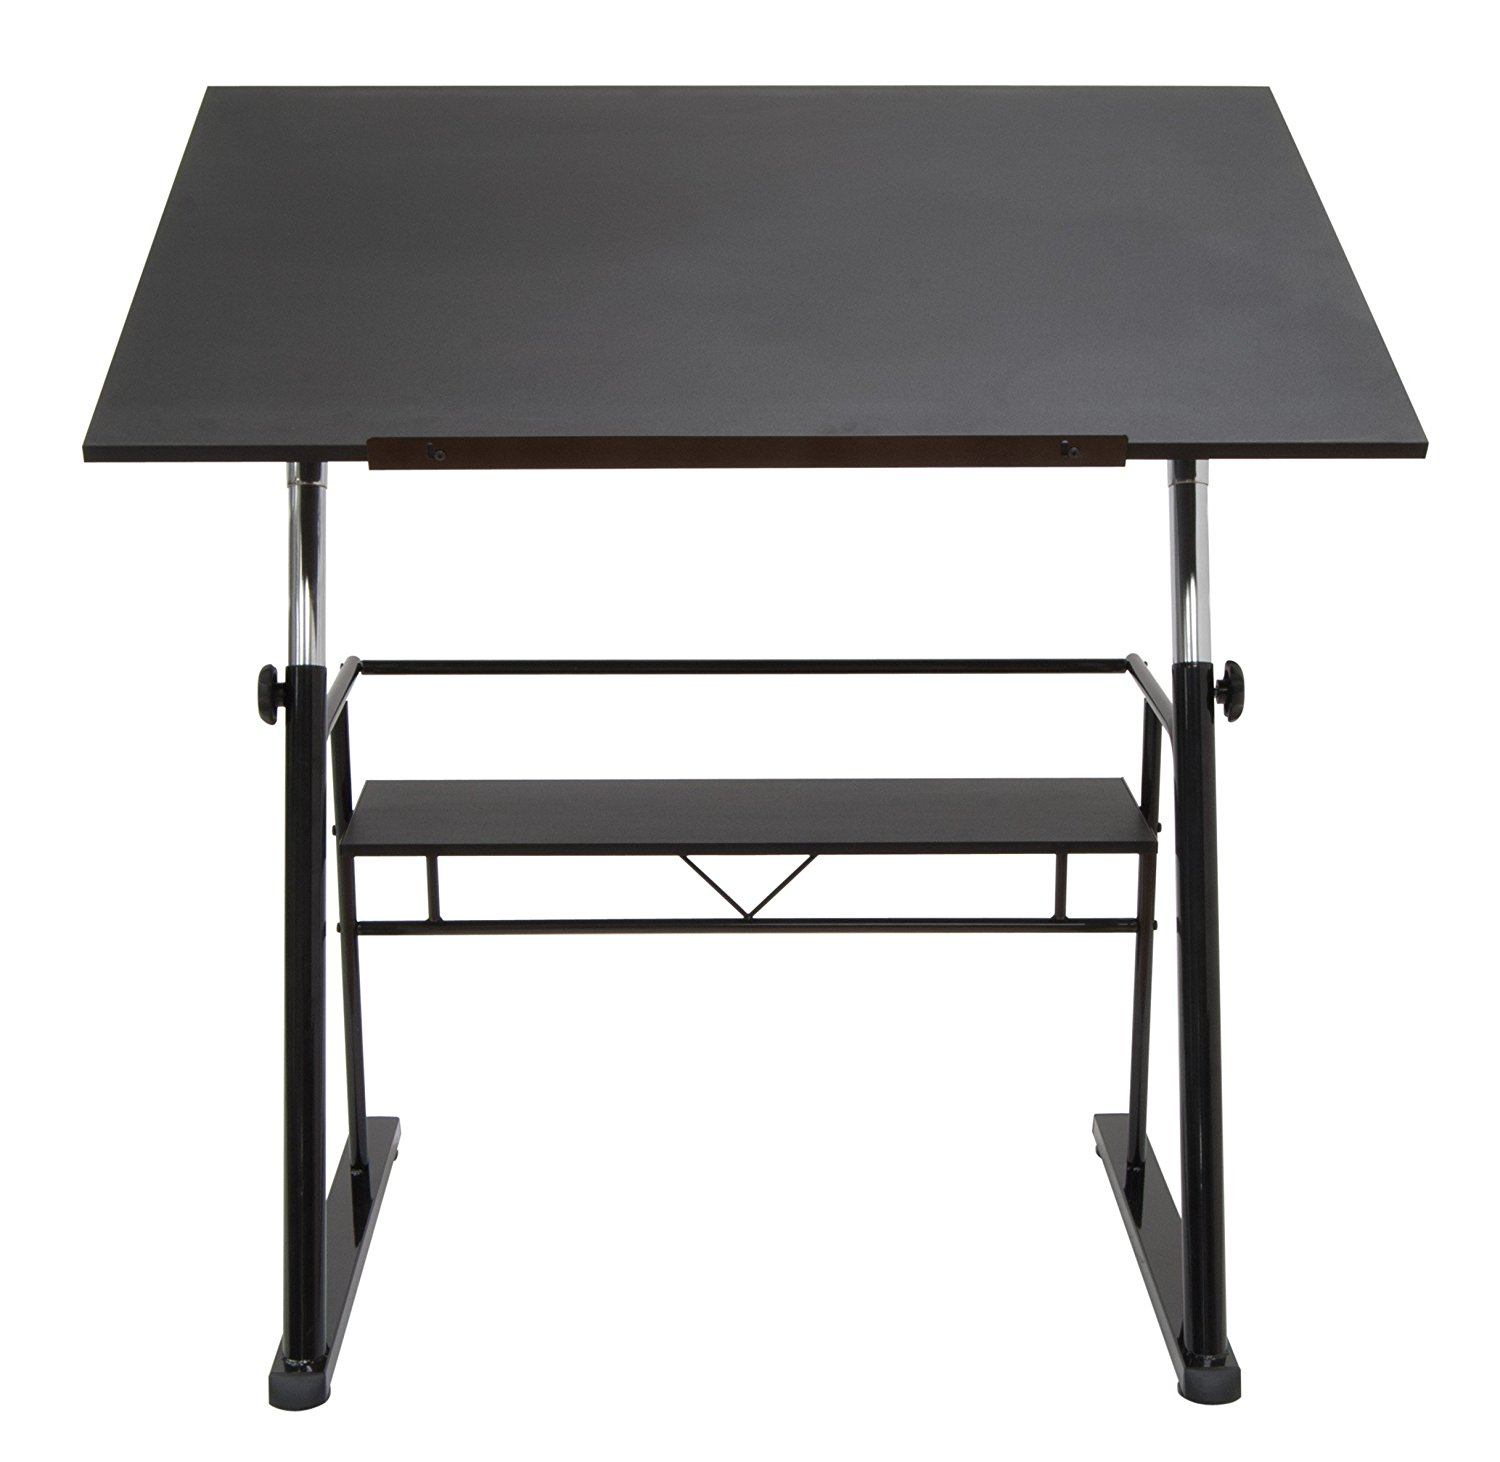 Studio Designs Zenith Drafting Table – Comes in 2 Styles, Bundled Set with Chair and Lamp Available